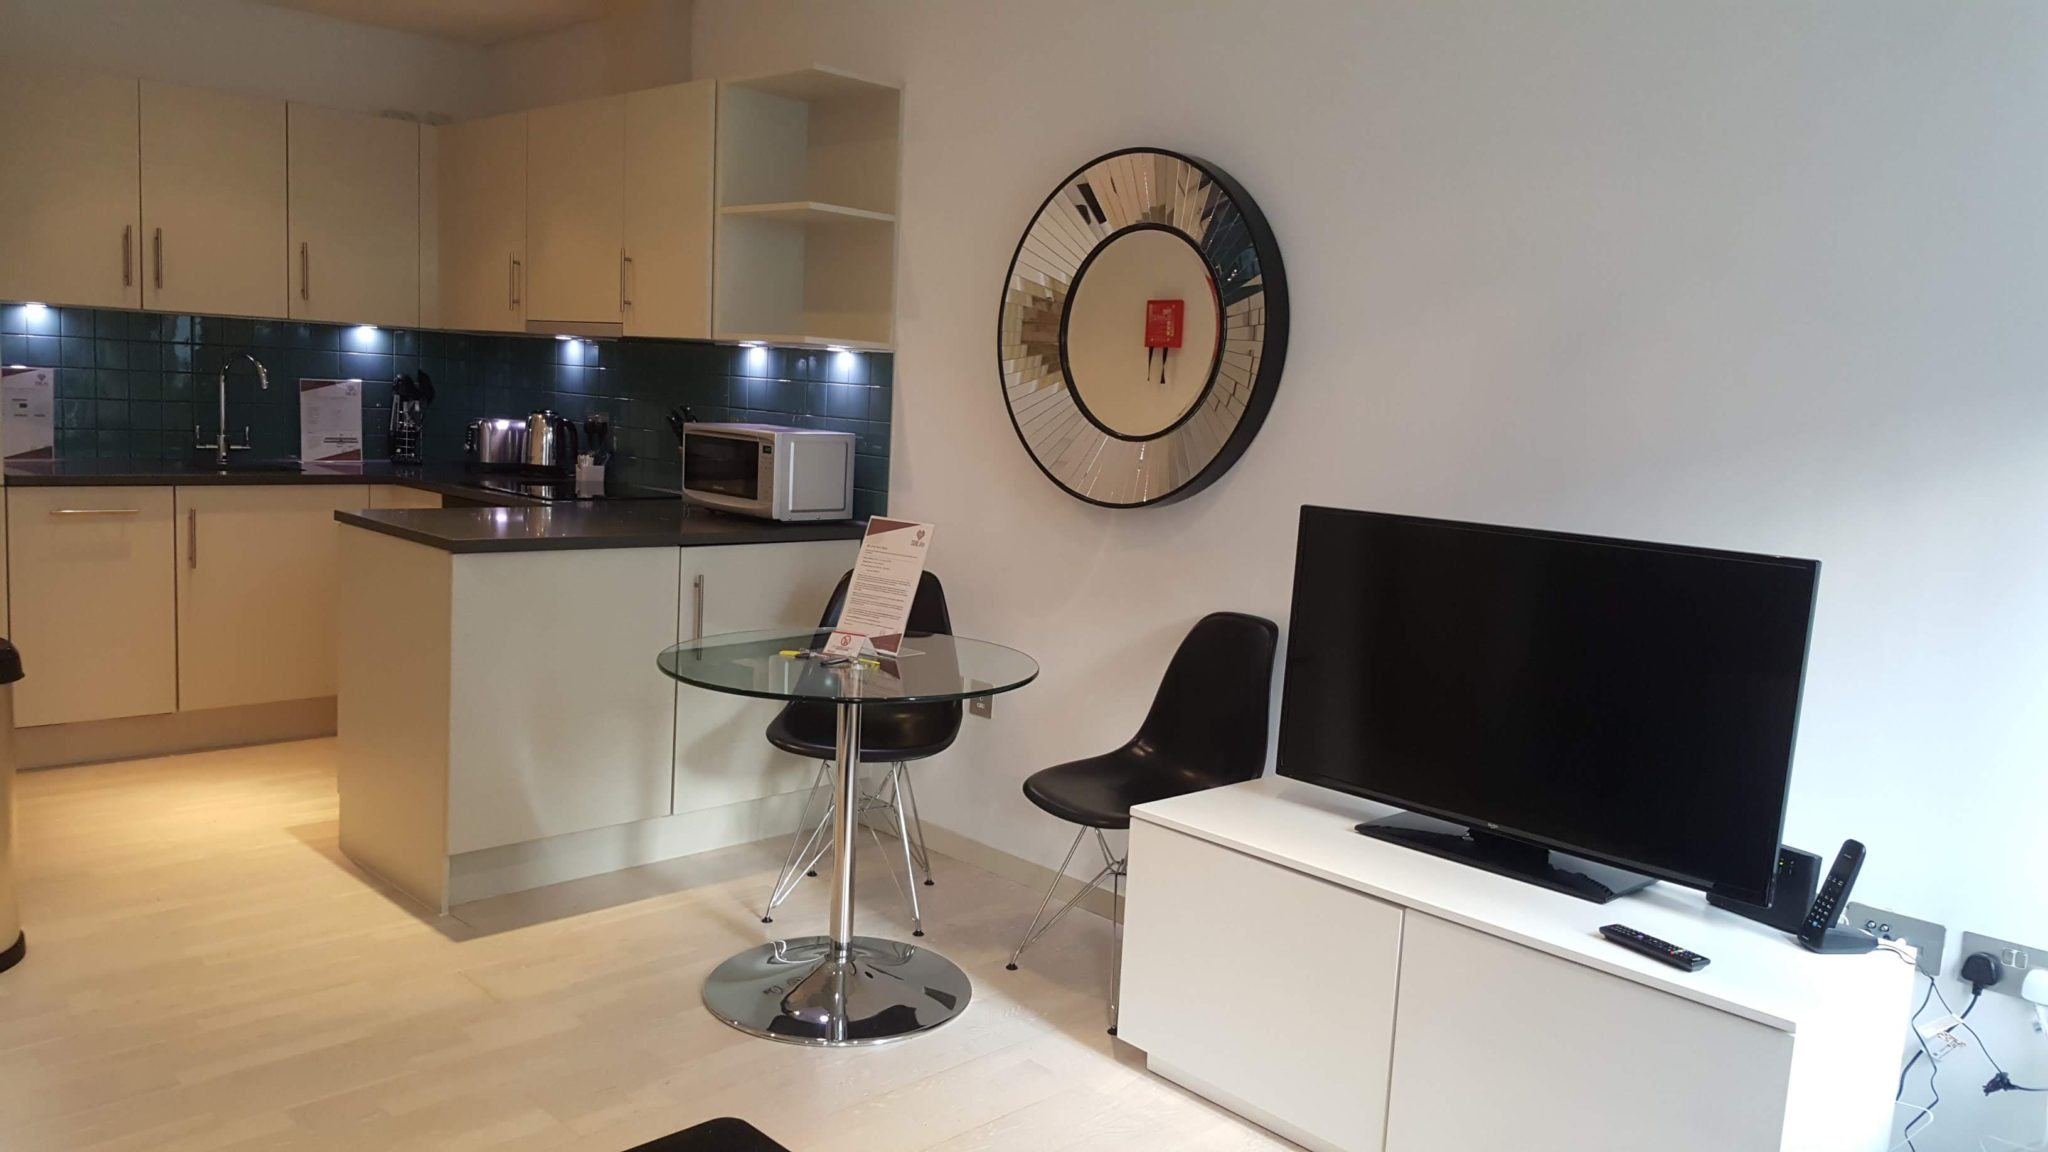 Corporate-Accommodation-London-available-now!-Book-cheap-St-Pauls-Executive-Apartments-with-free-Wi-Fi,-Fully-equipped-kitchen-&-Lift.